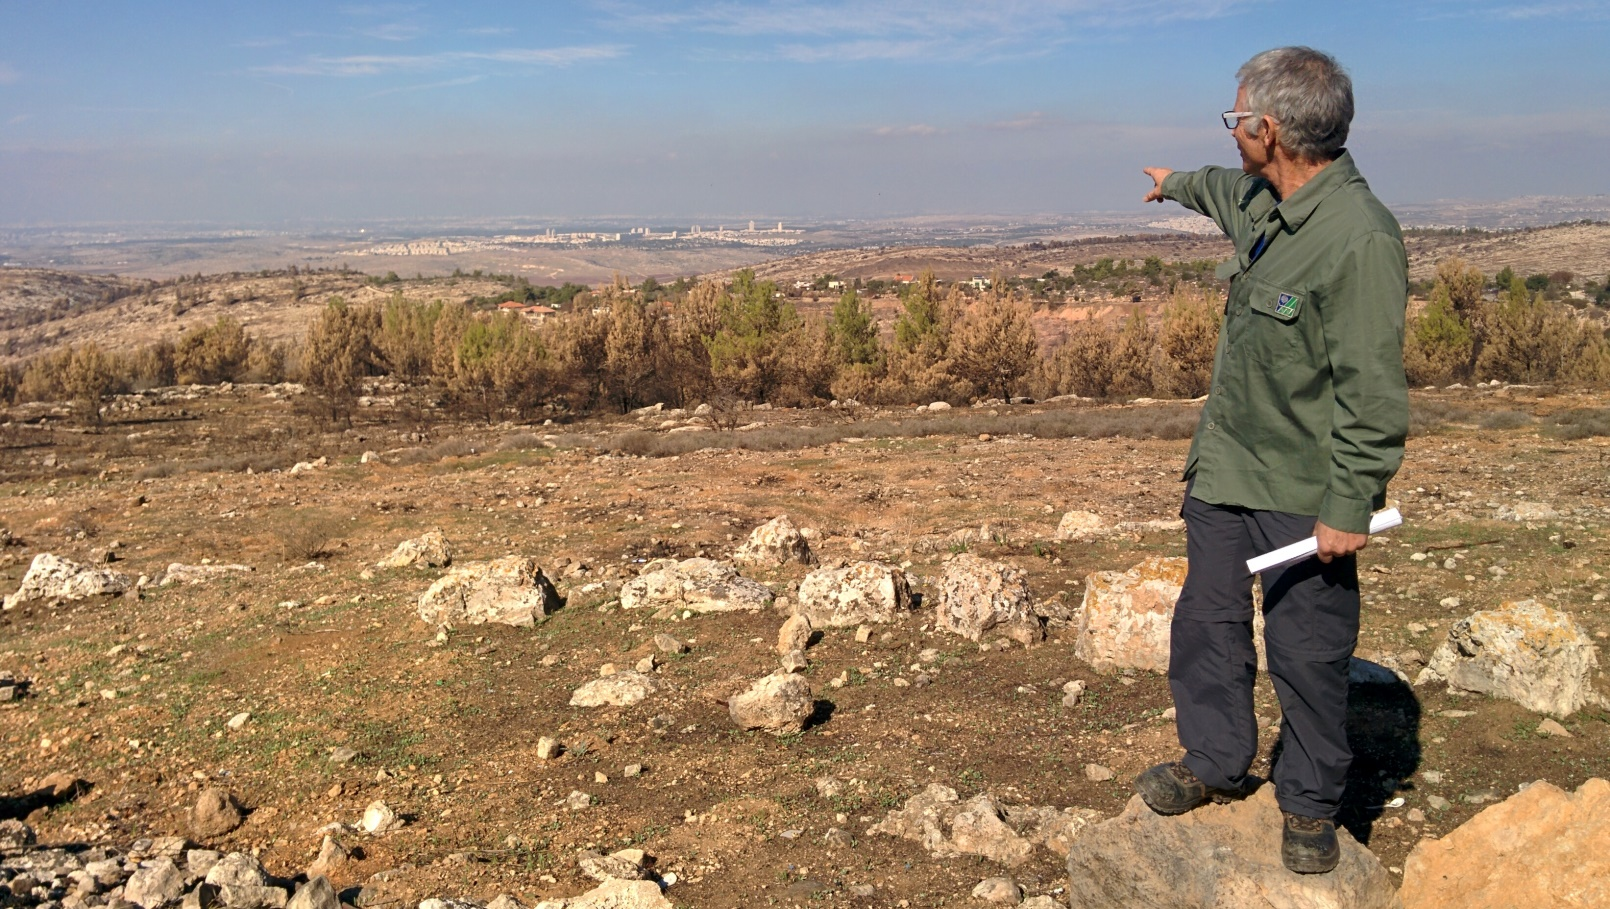 KKL-JNF forest supervisor Chanoch Zoref pointing from Har HaRuach toward Modi'in. Photo by Abigail Klein Leichman